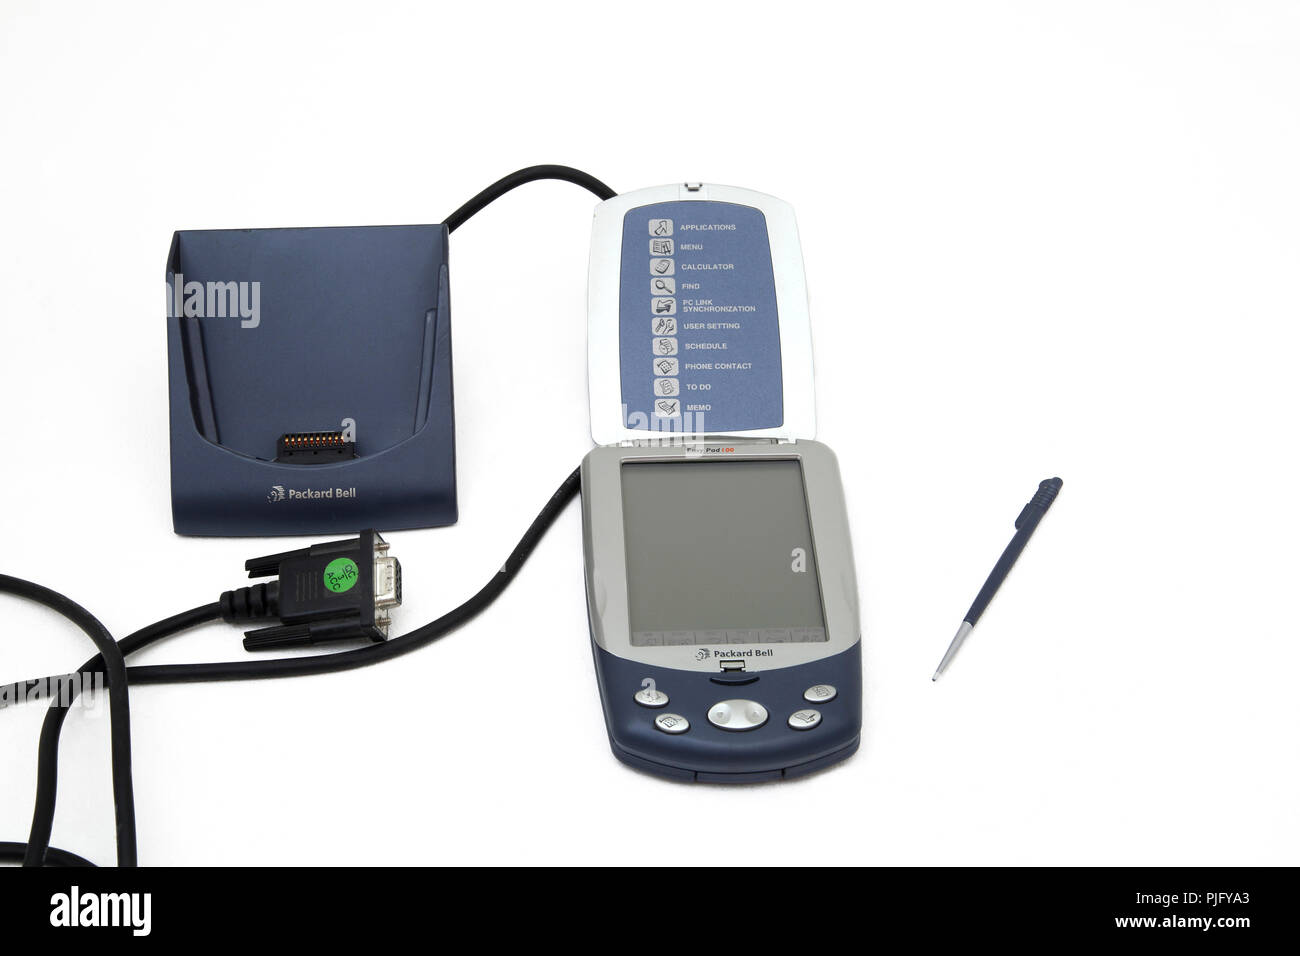 Packard Bell Easy Pad 100 PDA, Stylus and Charging Port - Stock Image